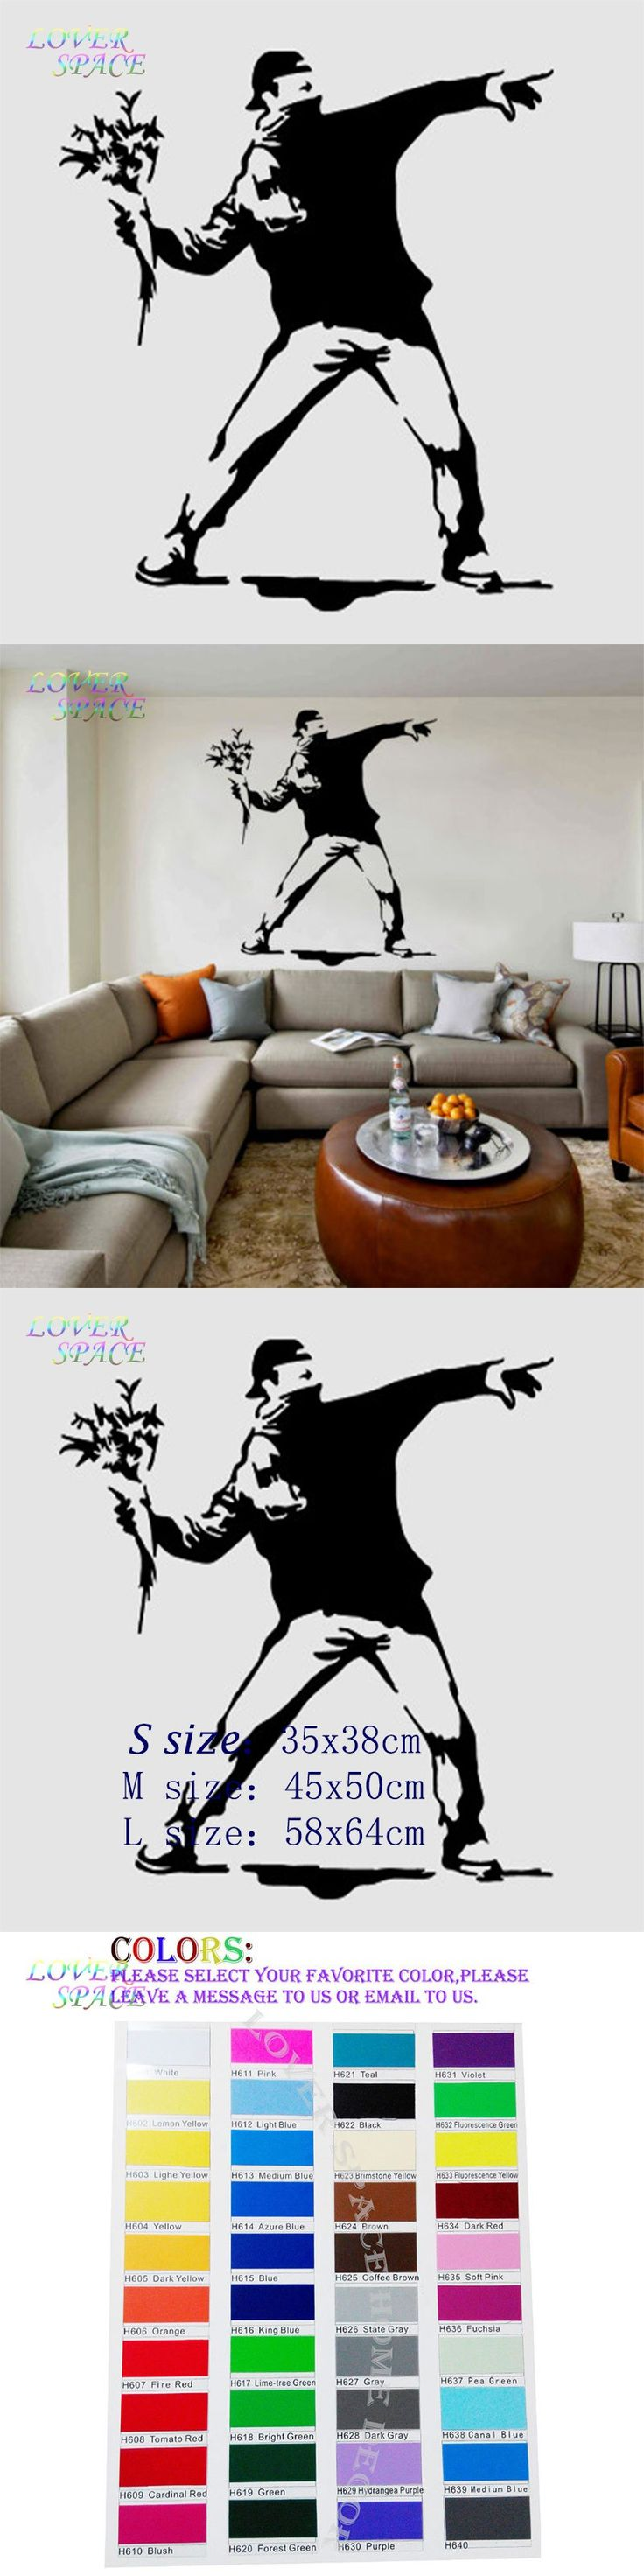 best 25 banksy wall stickers ideas on pinterest hostel bristol banksy wall decal sticker vinyl street art graffiti bedroom flower thrower cool decorative wall stickers home decor ls58171